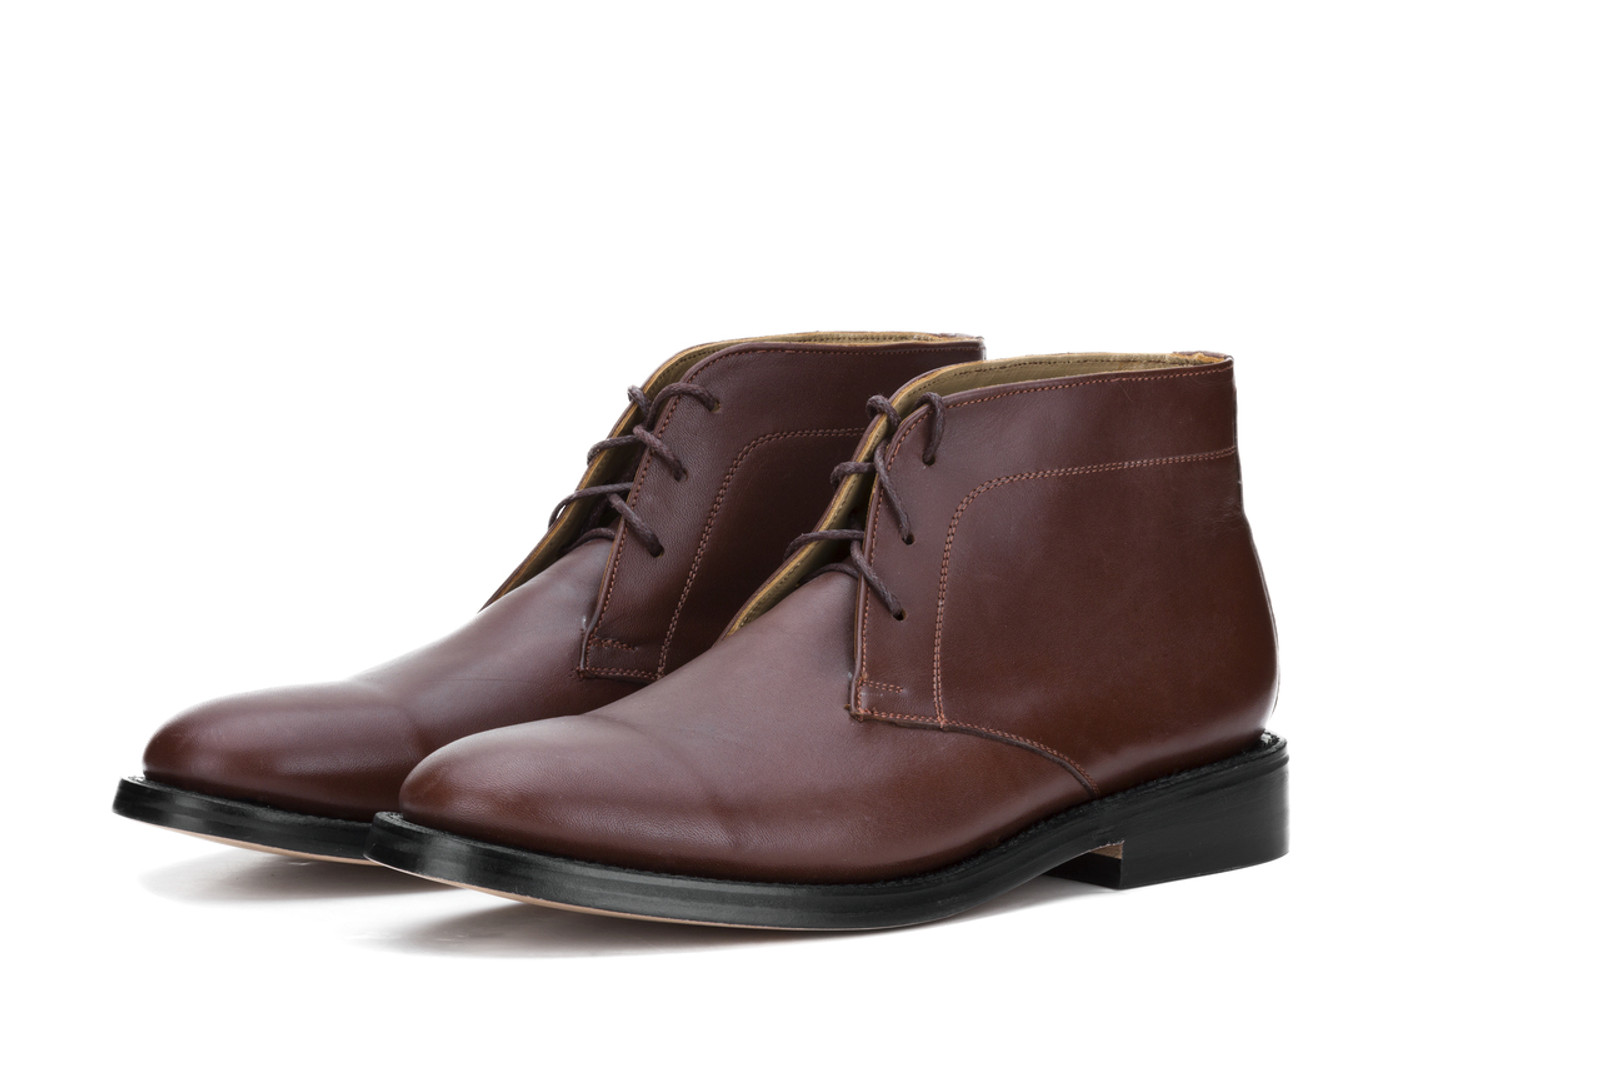 11 HARLOW BRANDY CHUKKA BOOT